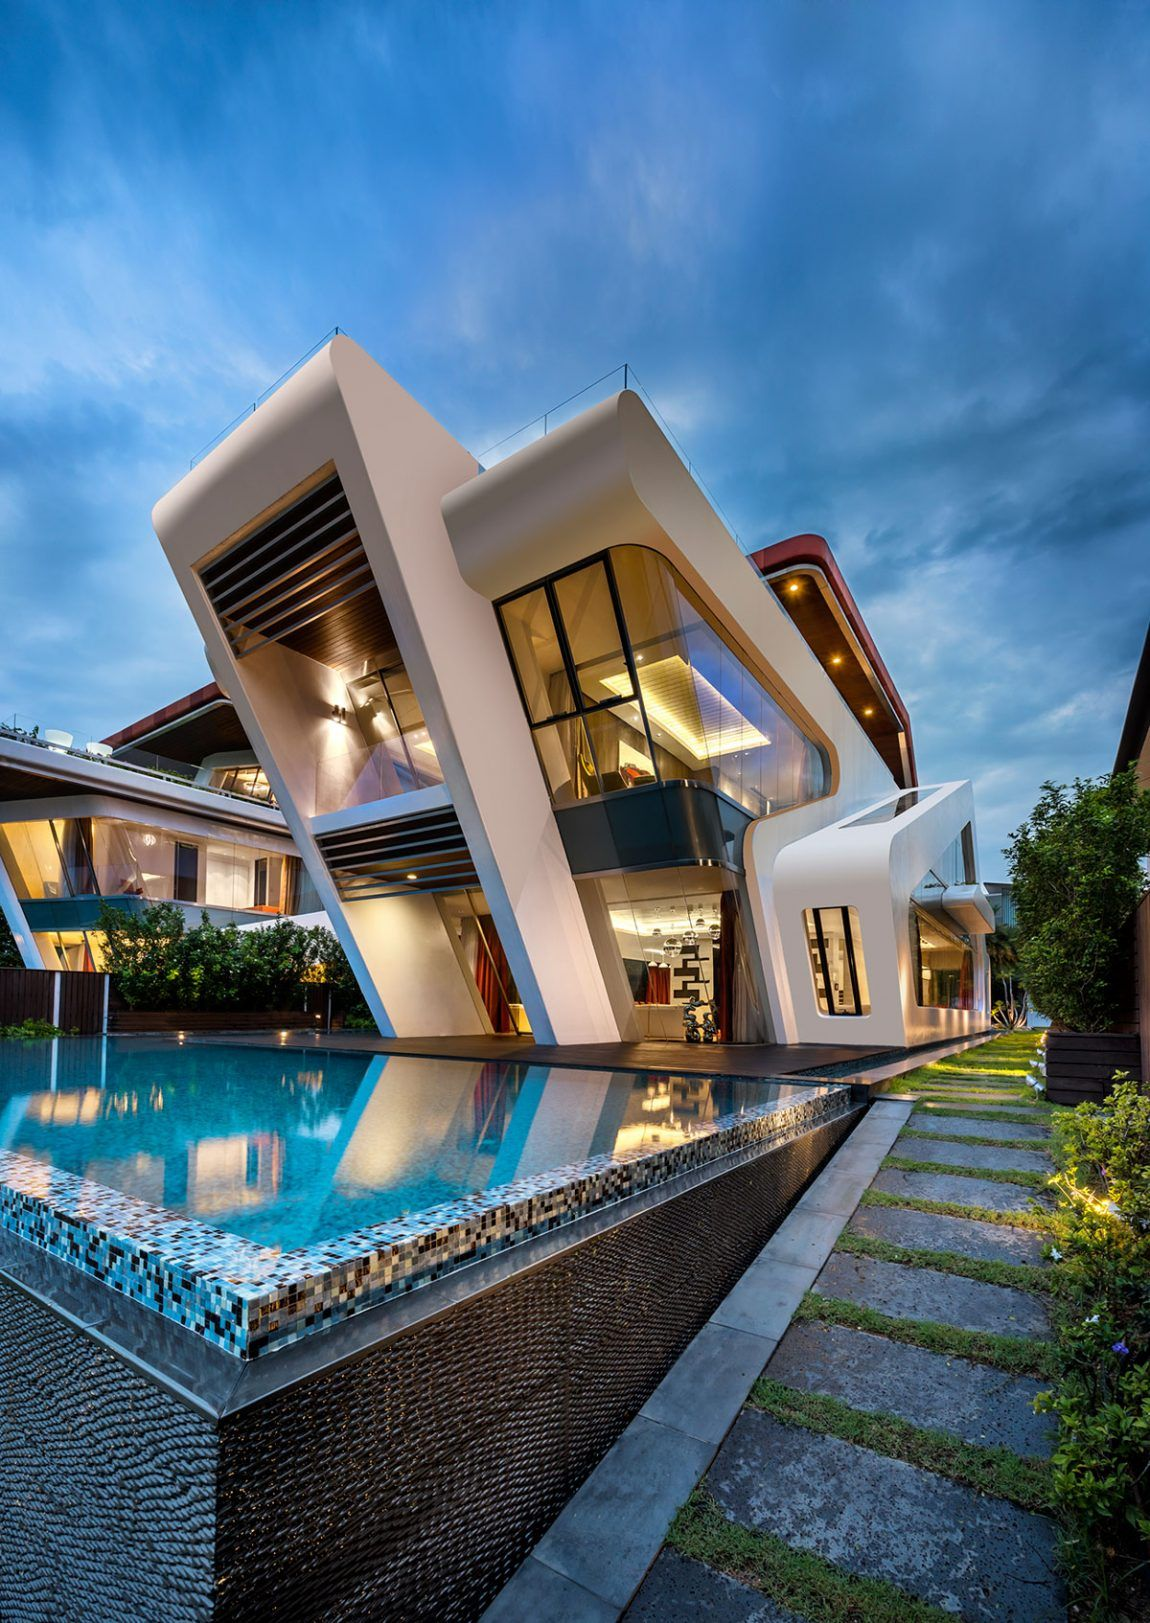 Mercurio design lab create a modern villa in singapore for Home architectures